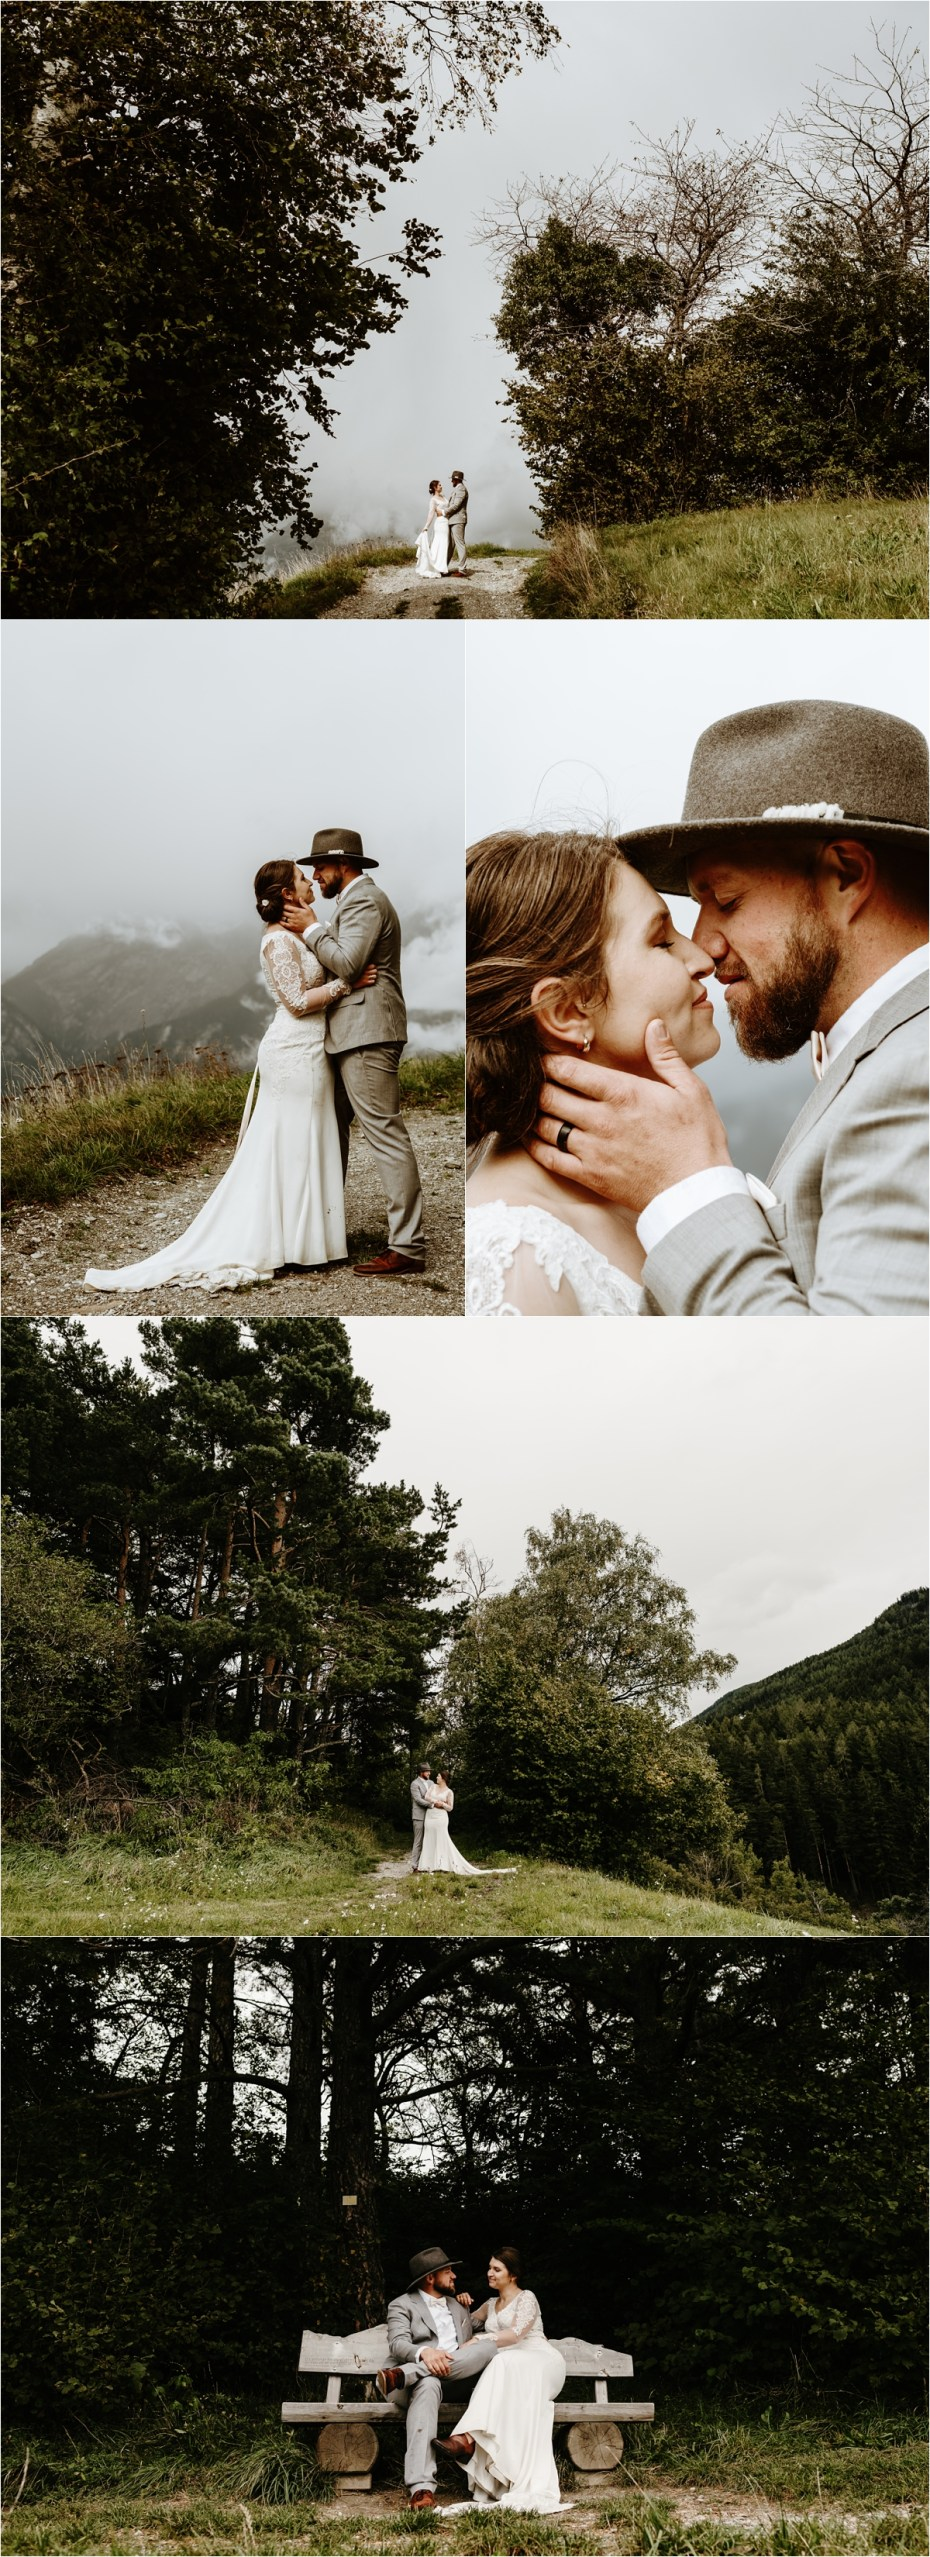 An intimate elopement in Innsbruck. Photos by Wild Connections Photography